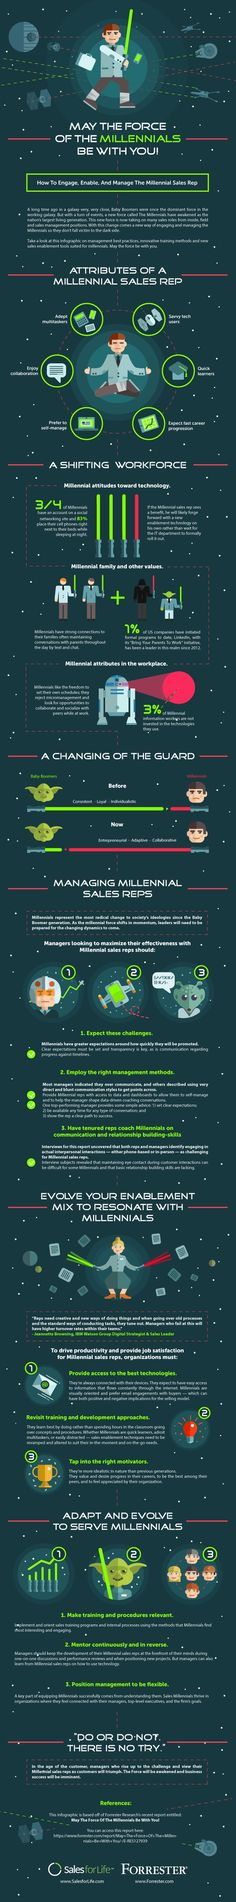 Take a look at this infographic with insights from Mary Shea of Forrester on management best practices, innovative training methods and new sales enablement tools suited for millennials.